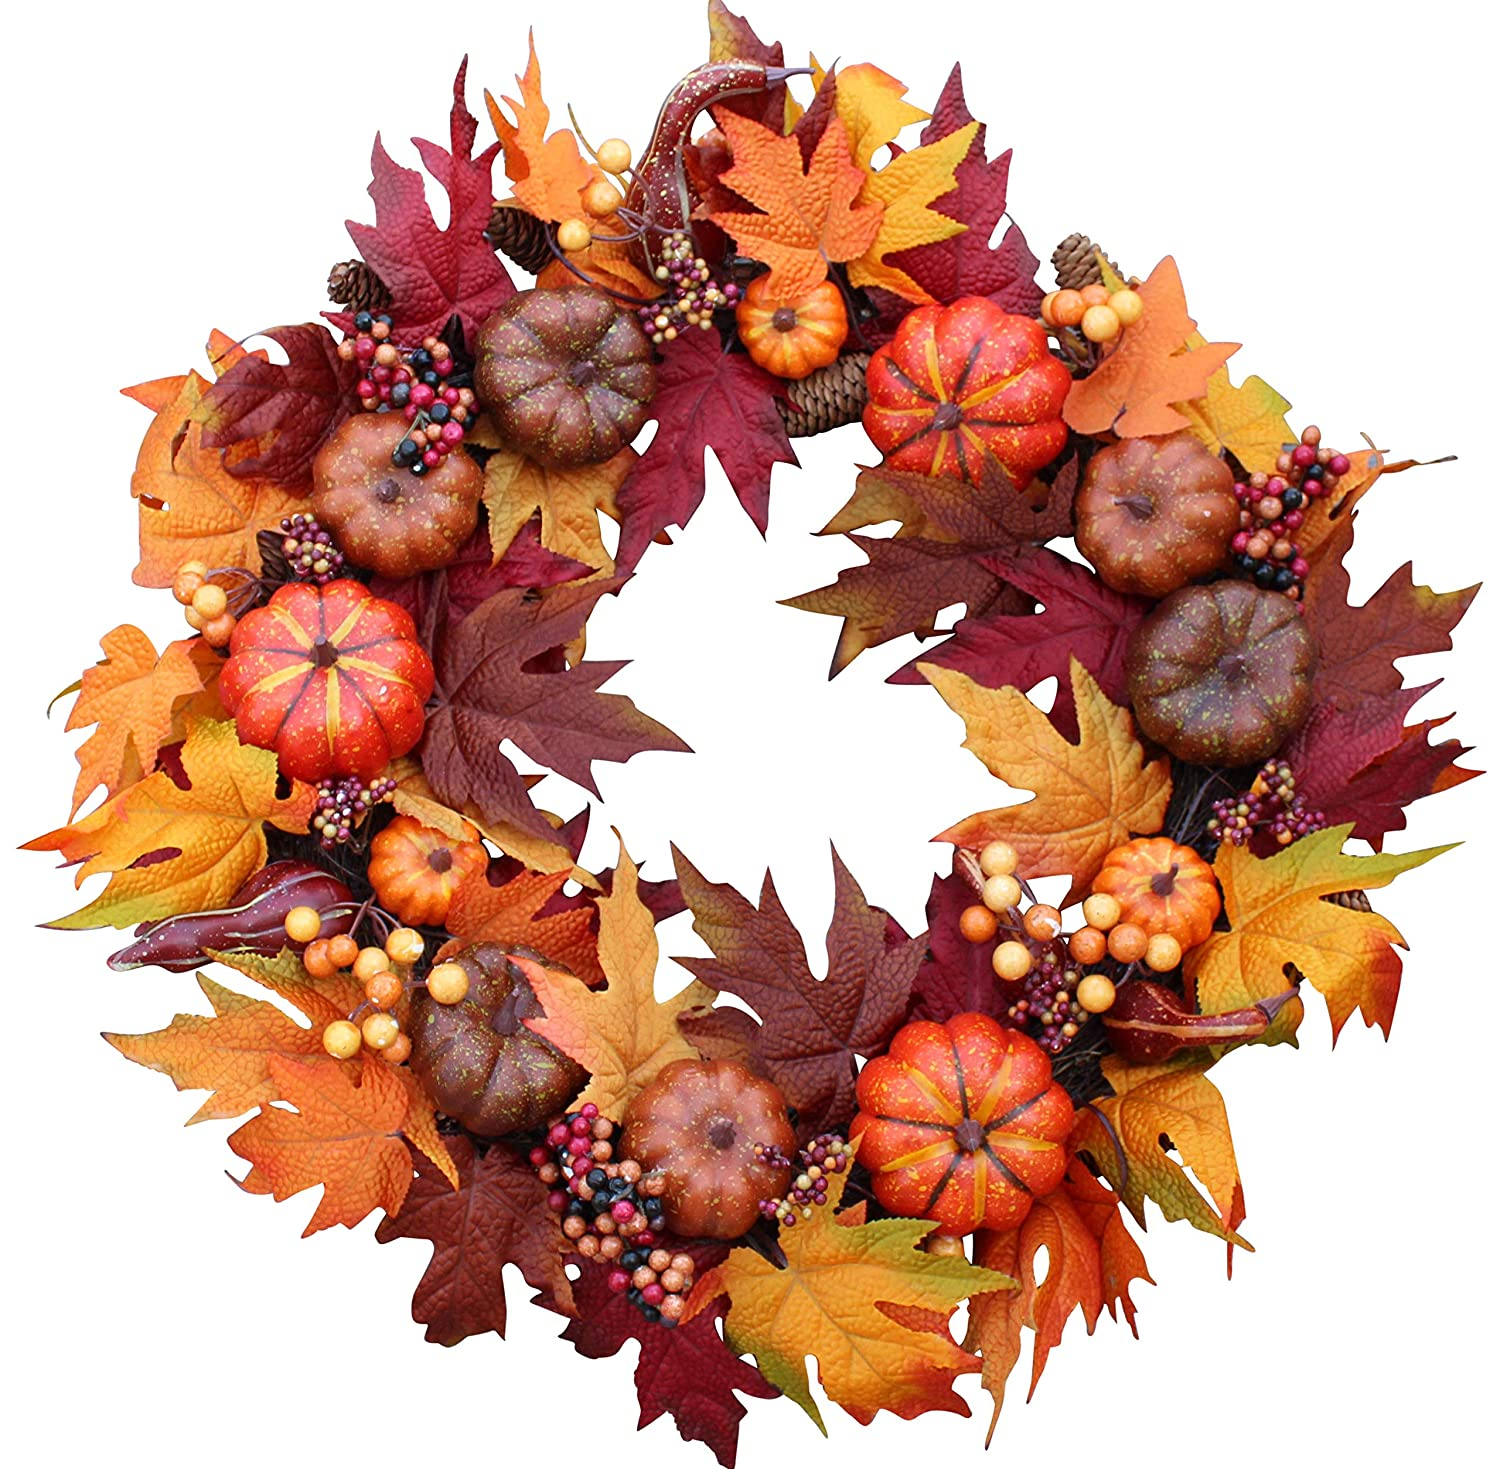 Woodbury Pumpkin Harvest Silk Fall Front Door Wreath 22 Inches - Brightens Front Door Decor with Rich Fall Colors, Approved for Covered Outdoor Use, with Beautiful White Gift Box The Wreath Depot